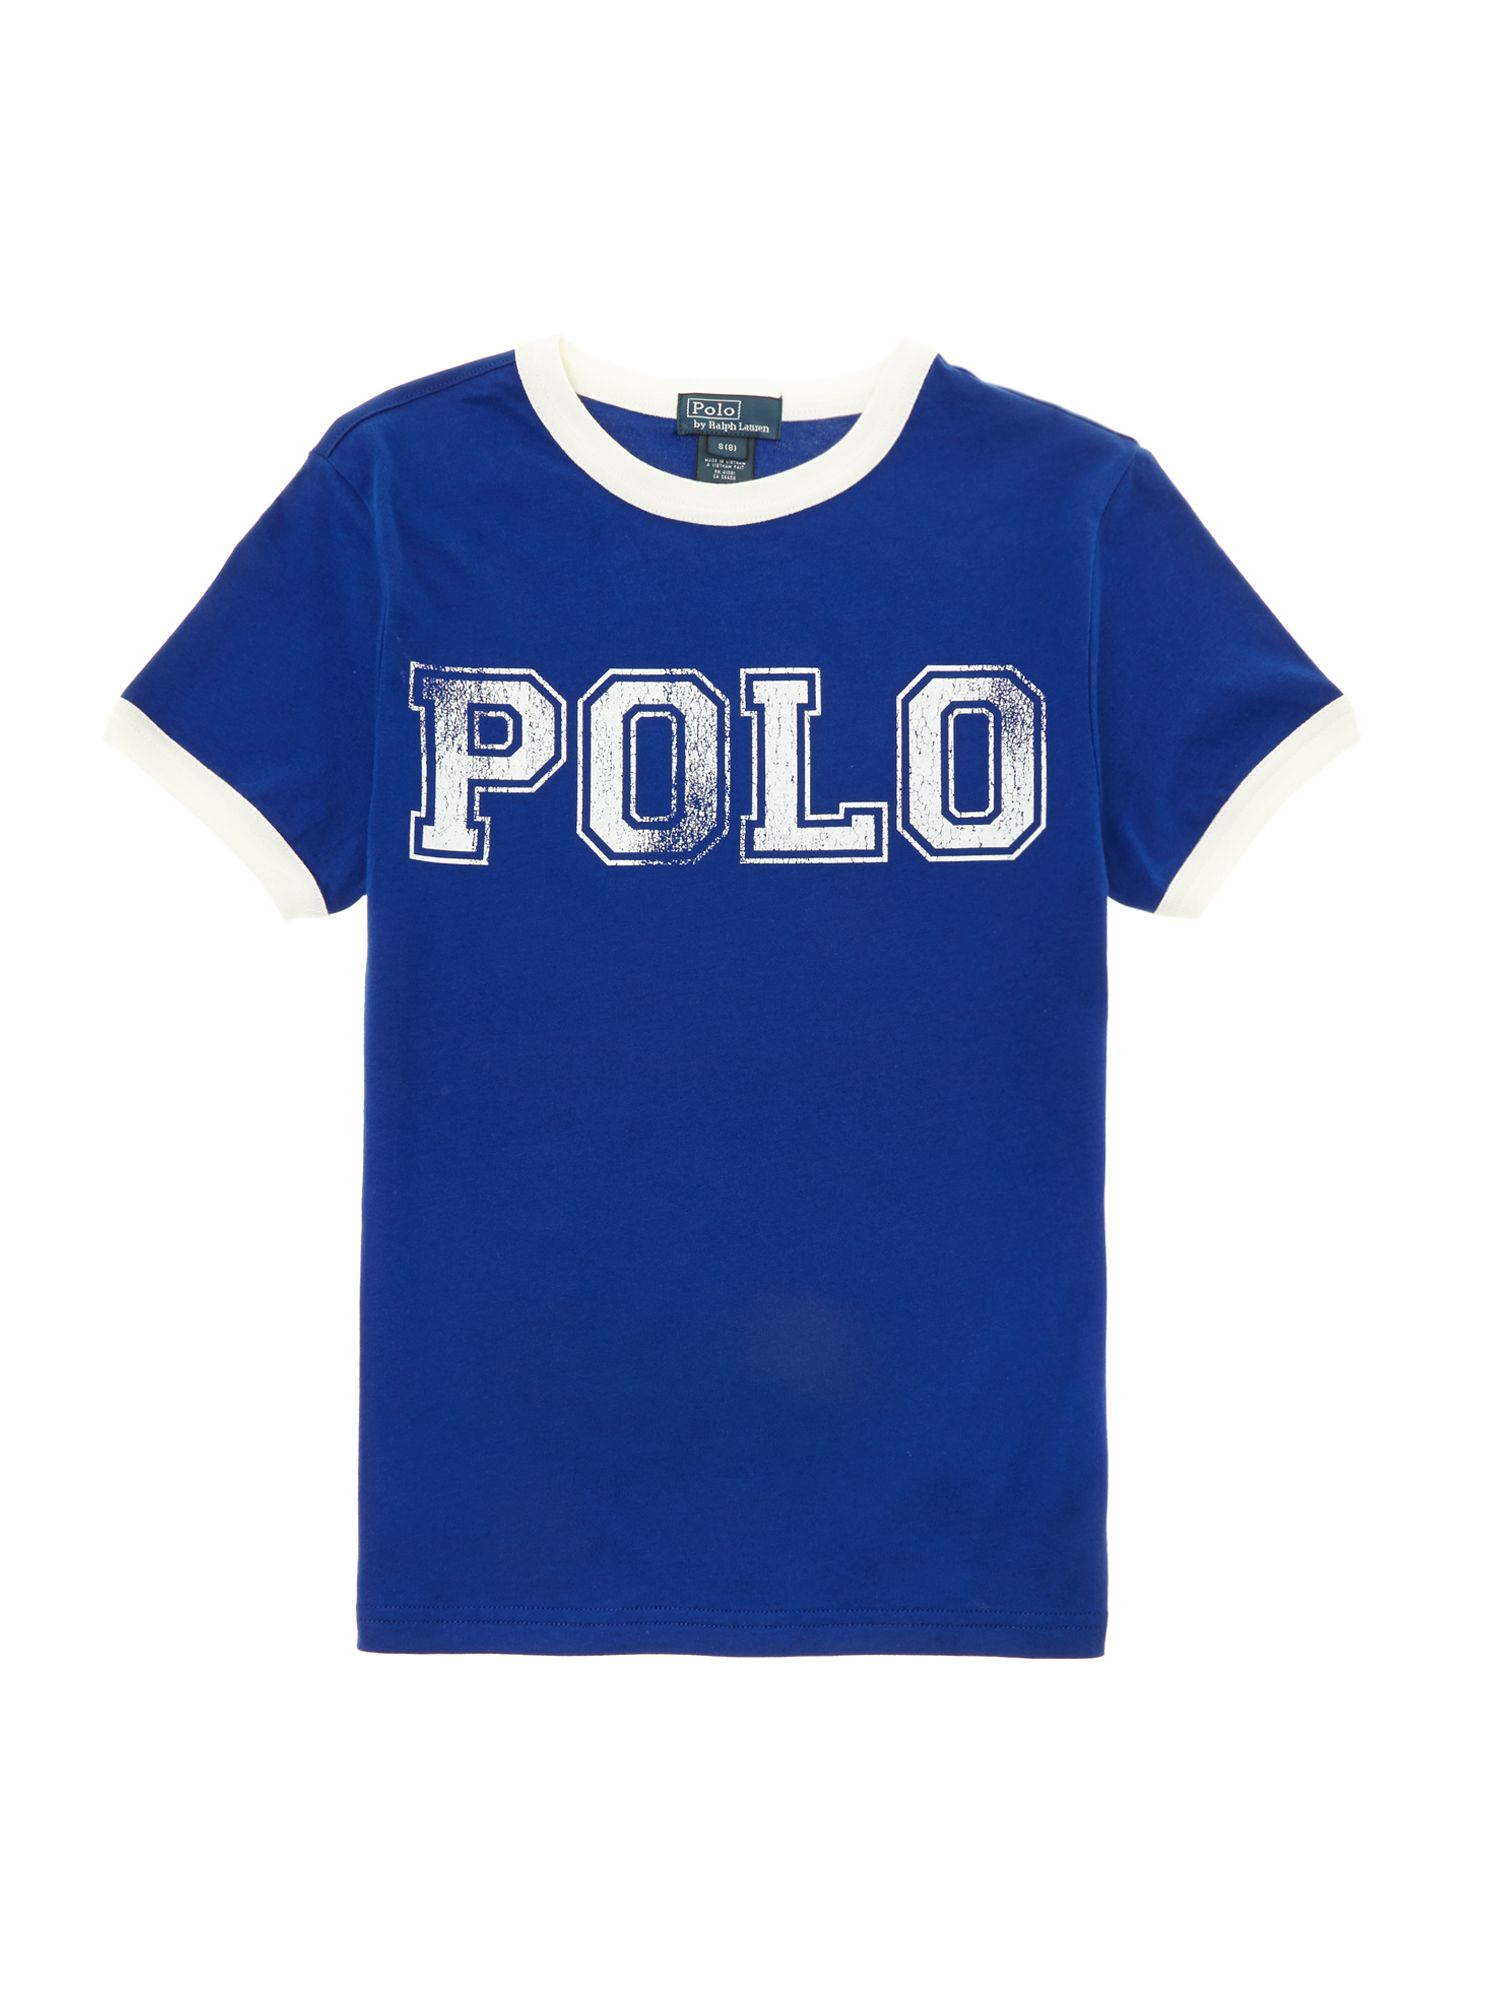 Boys distressed polo t-shirt